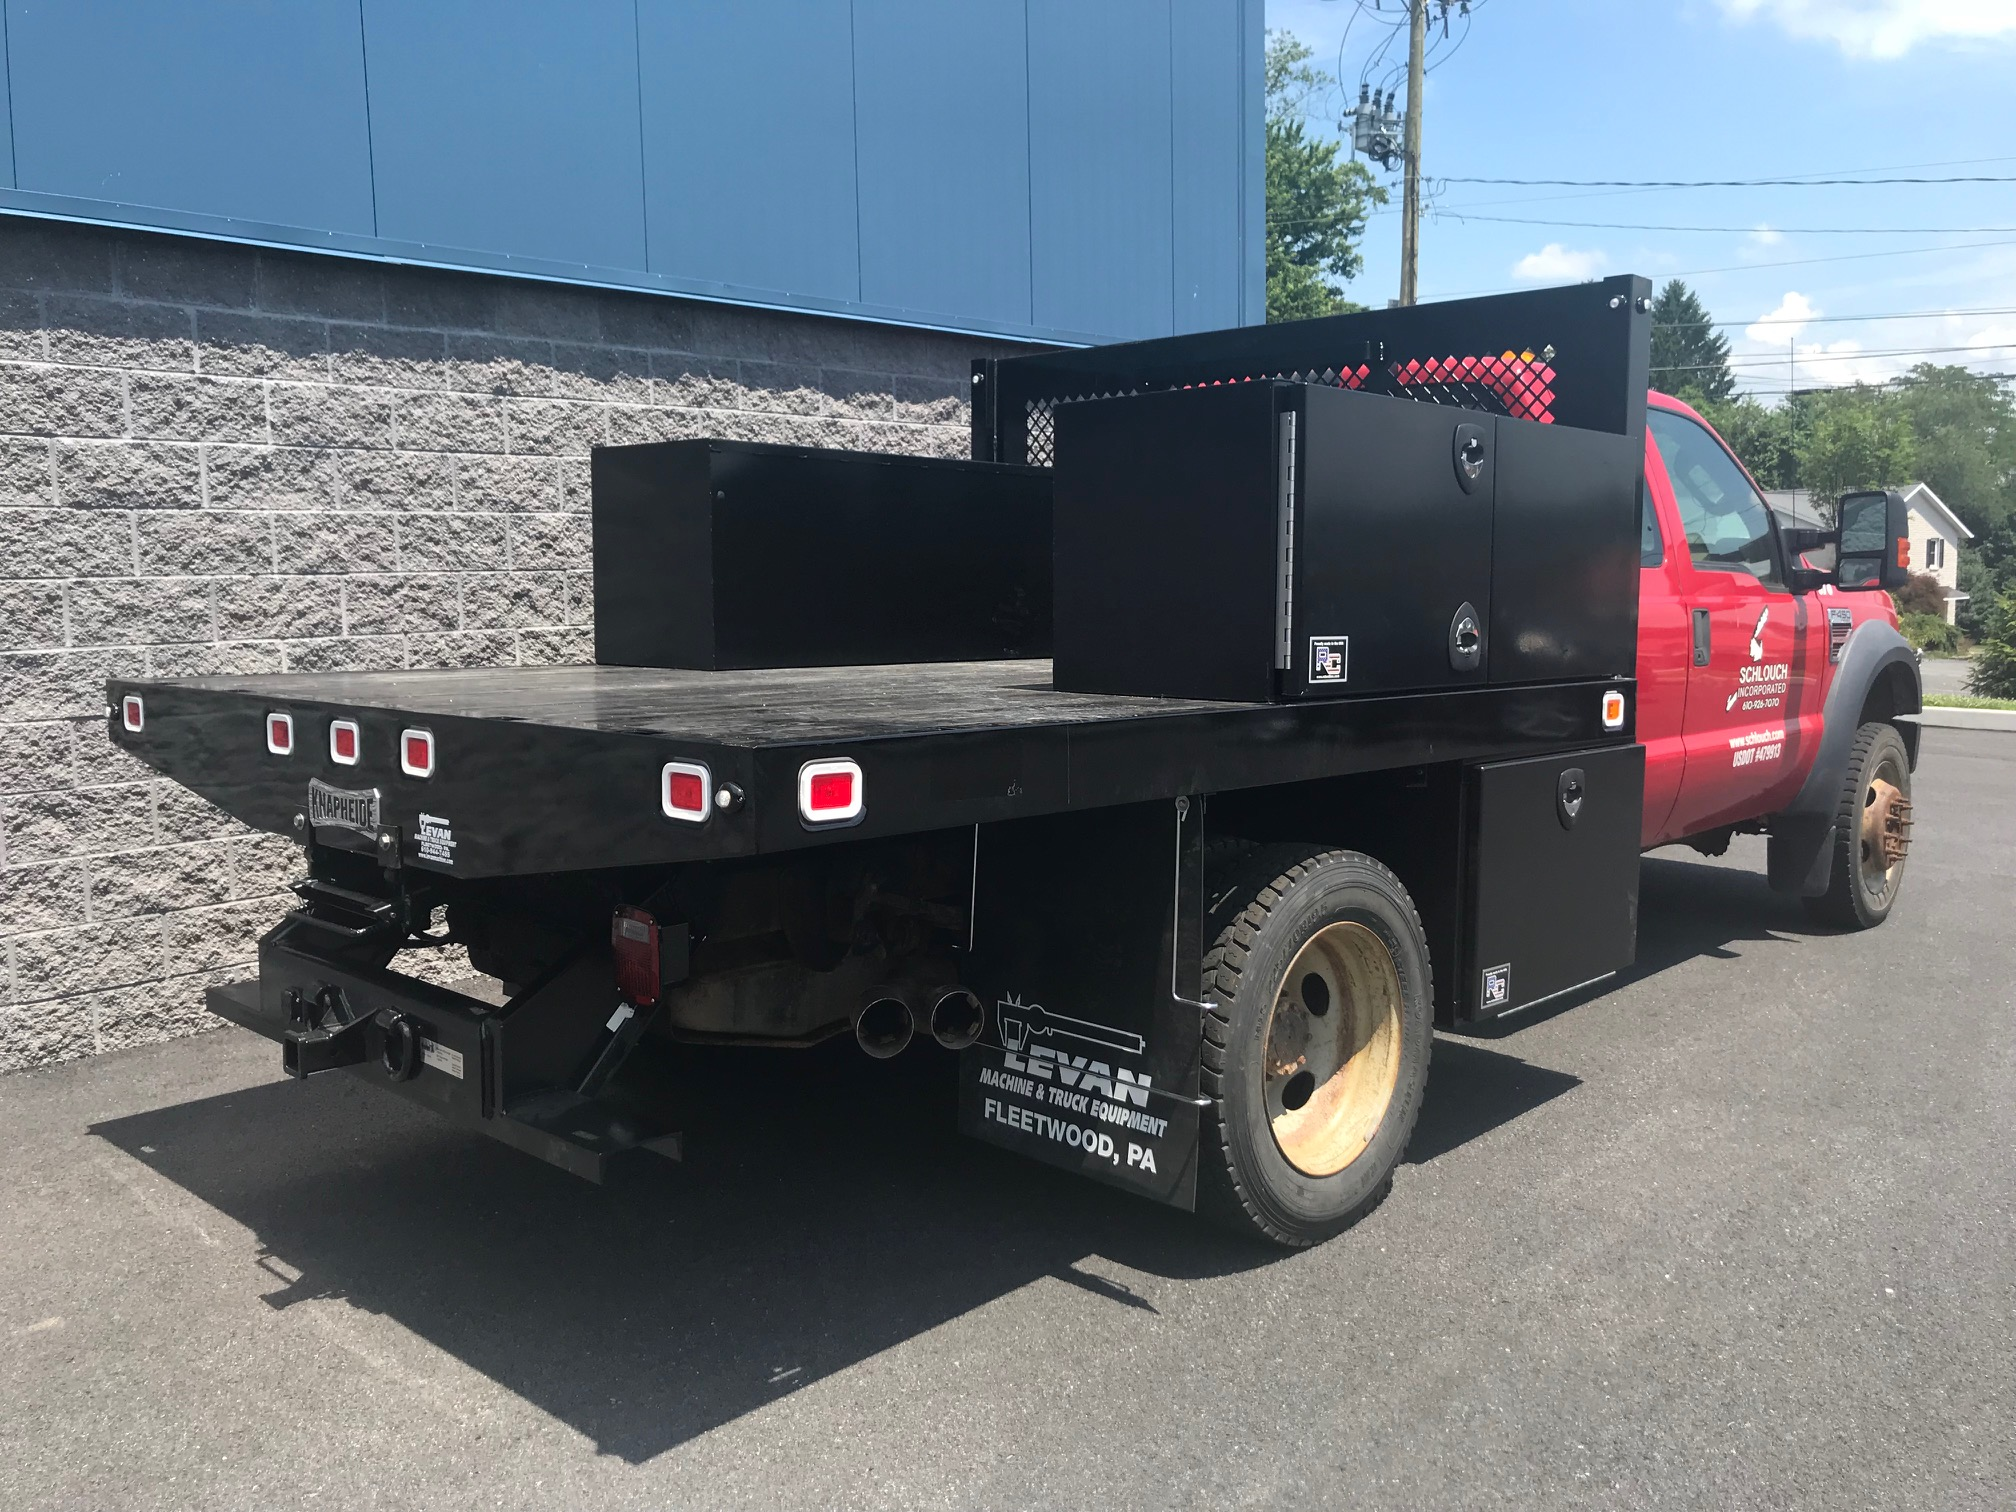 back of black and red flatbed truck with storage containers